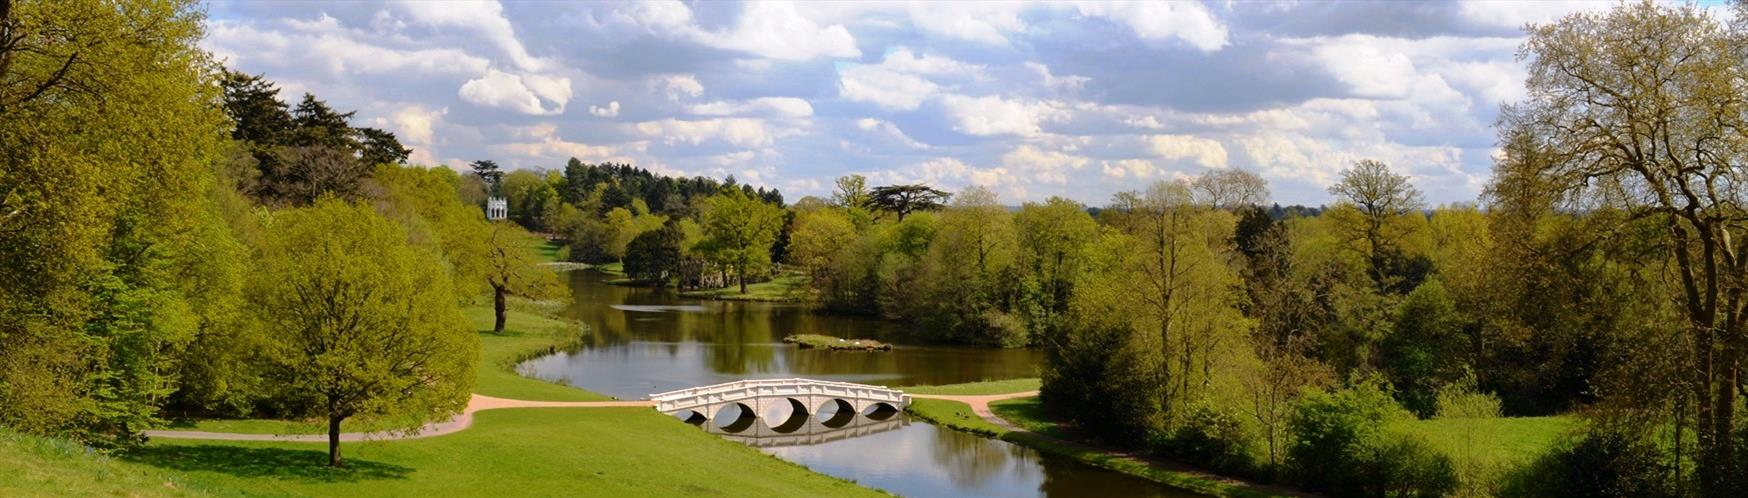 Unique Things To Do In Surrey  The Official Visitor Guide With Exciting Painshill With Delightful My Olive Garden Also Crabtree Evelyn Gardeners Hand Therapy In Addition Plastic Plants For The Garden And University Gardens Glasgow As Well As Gardening Clothing Uk Additionally Sea Garden Bungalows From Visitsurreycom With   Exciting Things To Do In Surrey  The Official Visitor Guide With Delightful Painshill And Unique My Olive Garden Also Crabtree Evelyn Gardeners Hand Therapy In Addition Plastic Plants For The Garden From Visitsurreycom